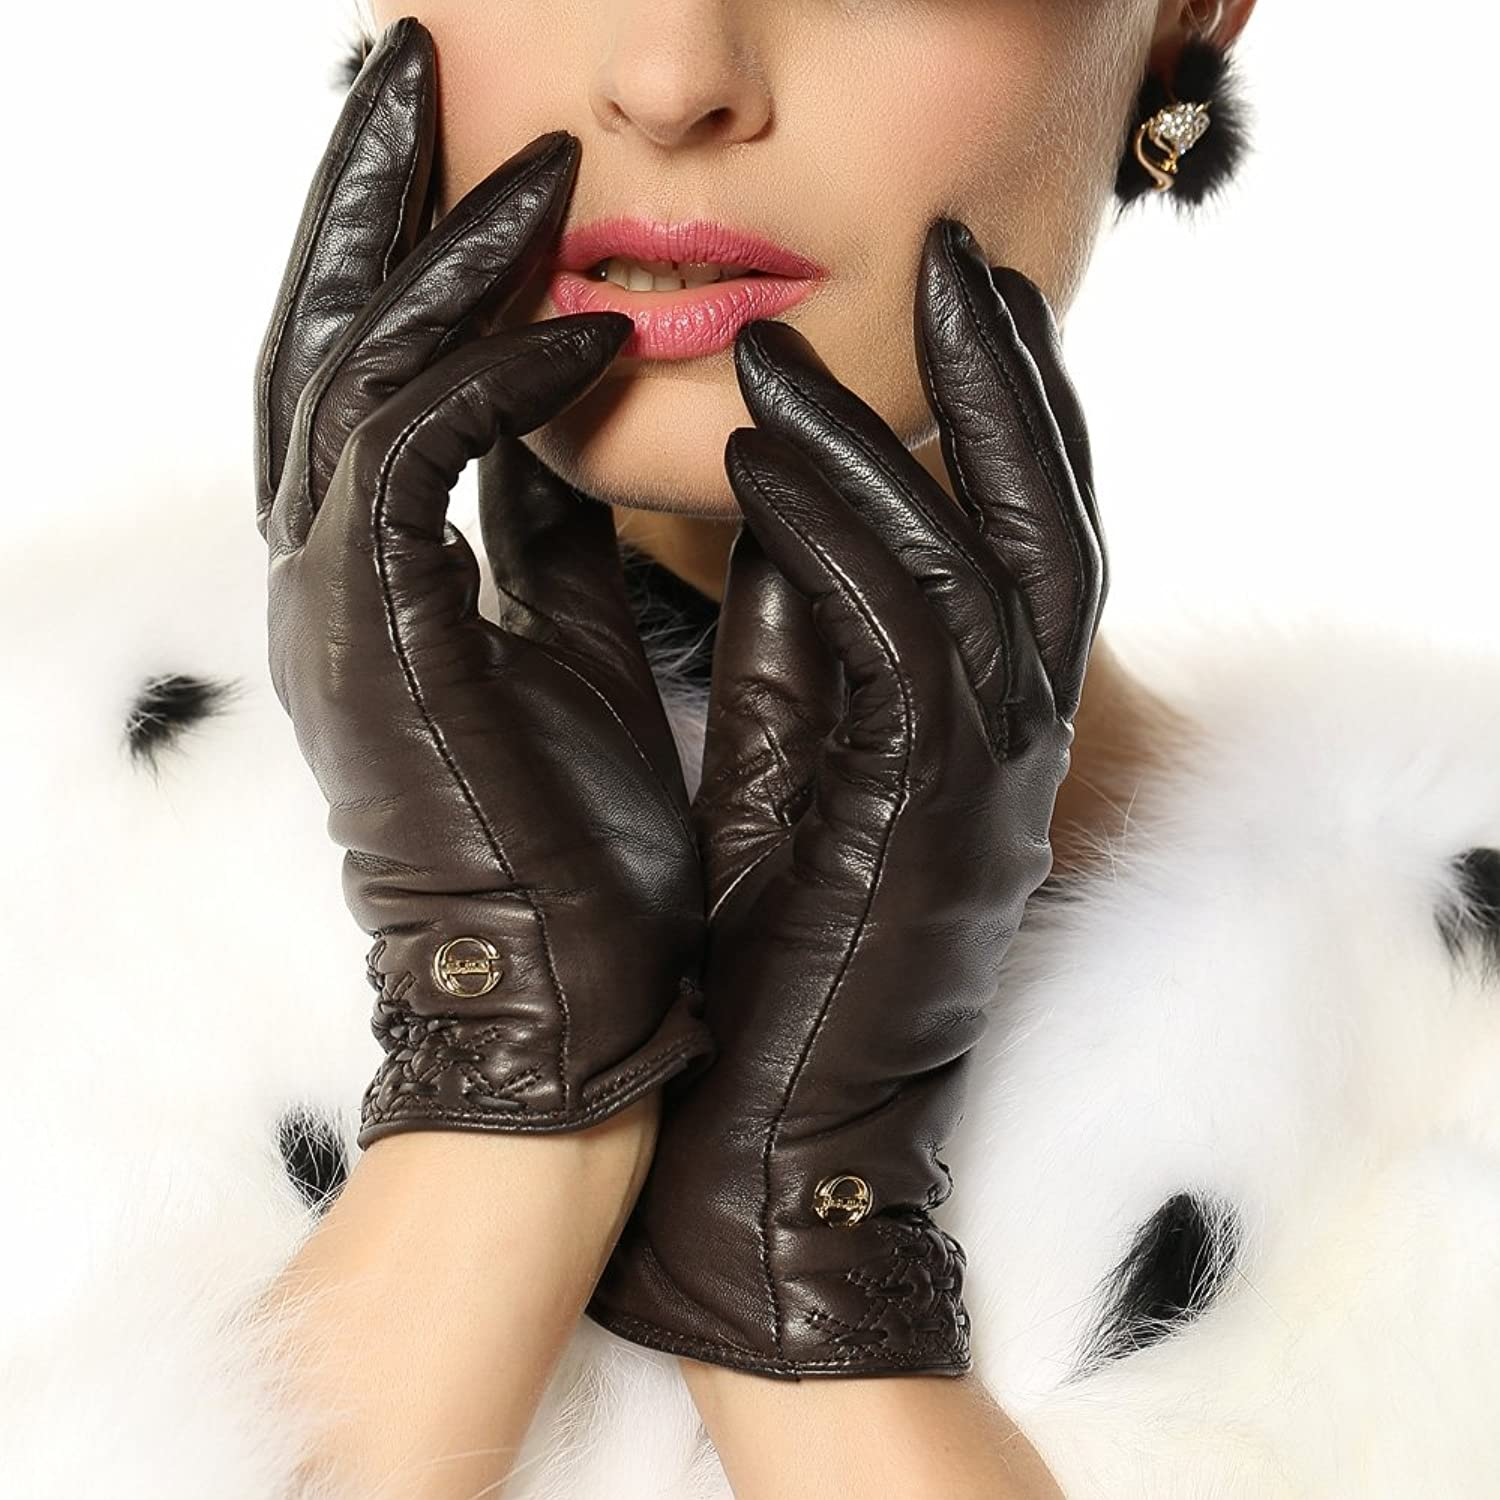 ELMA Lady's Winter Warm Nappa Leather Checked Gloves Cashmere Lining Gold Plated Logo